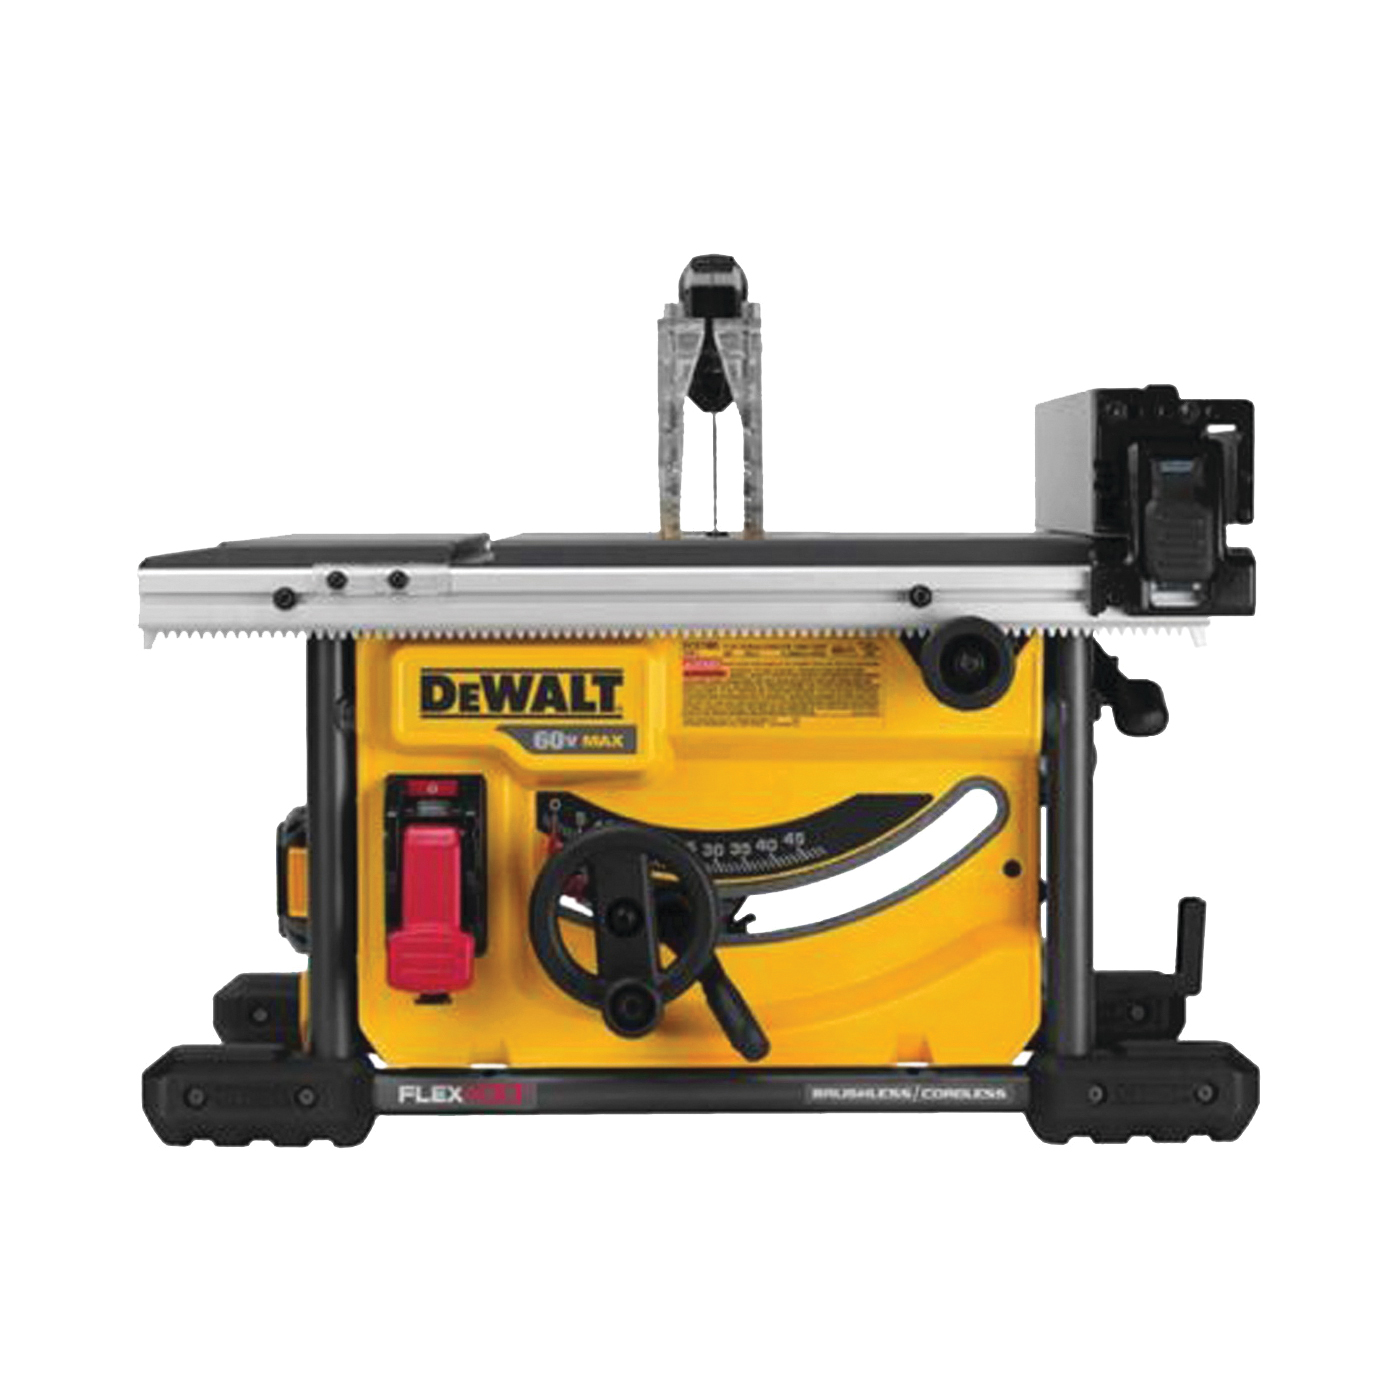 Picture of DeWALT FLEXVOLT DCS7485T1 Table Saw, 60 V, 8-1/4 in Dia Blade, 5/8 in Arbor, 5800 rpm Speed